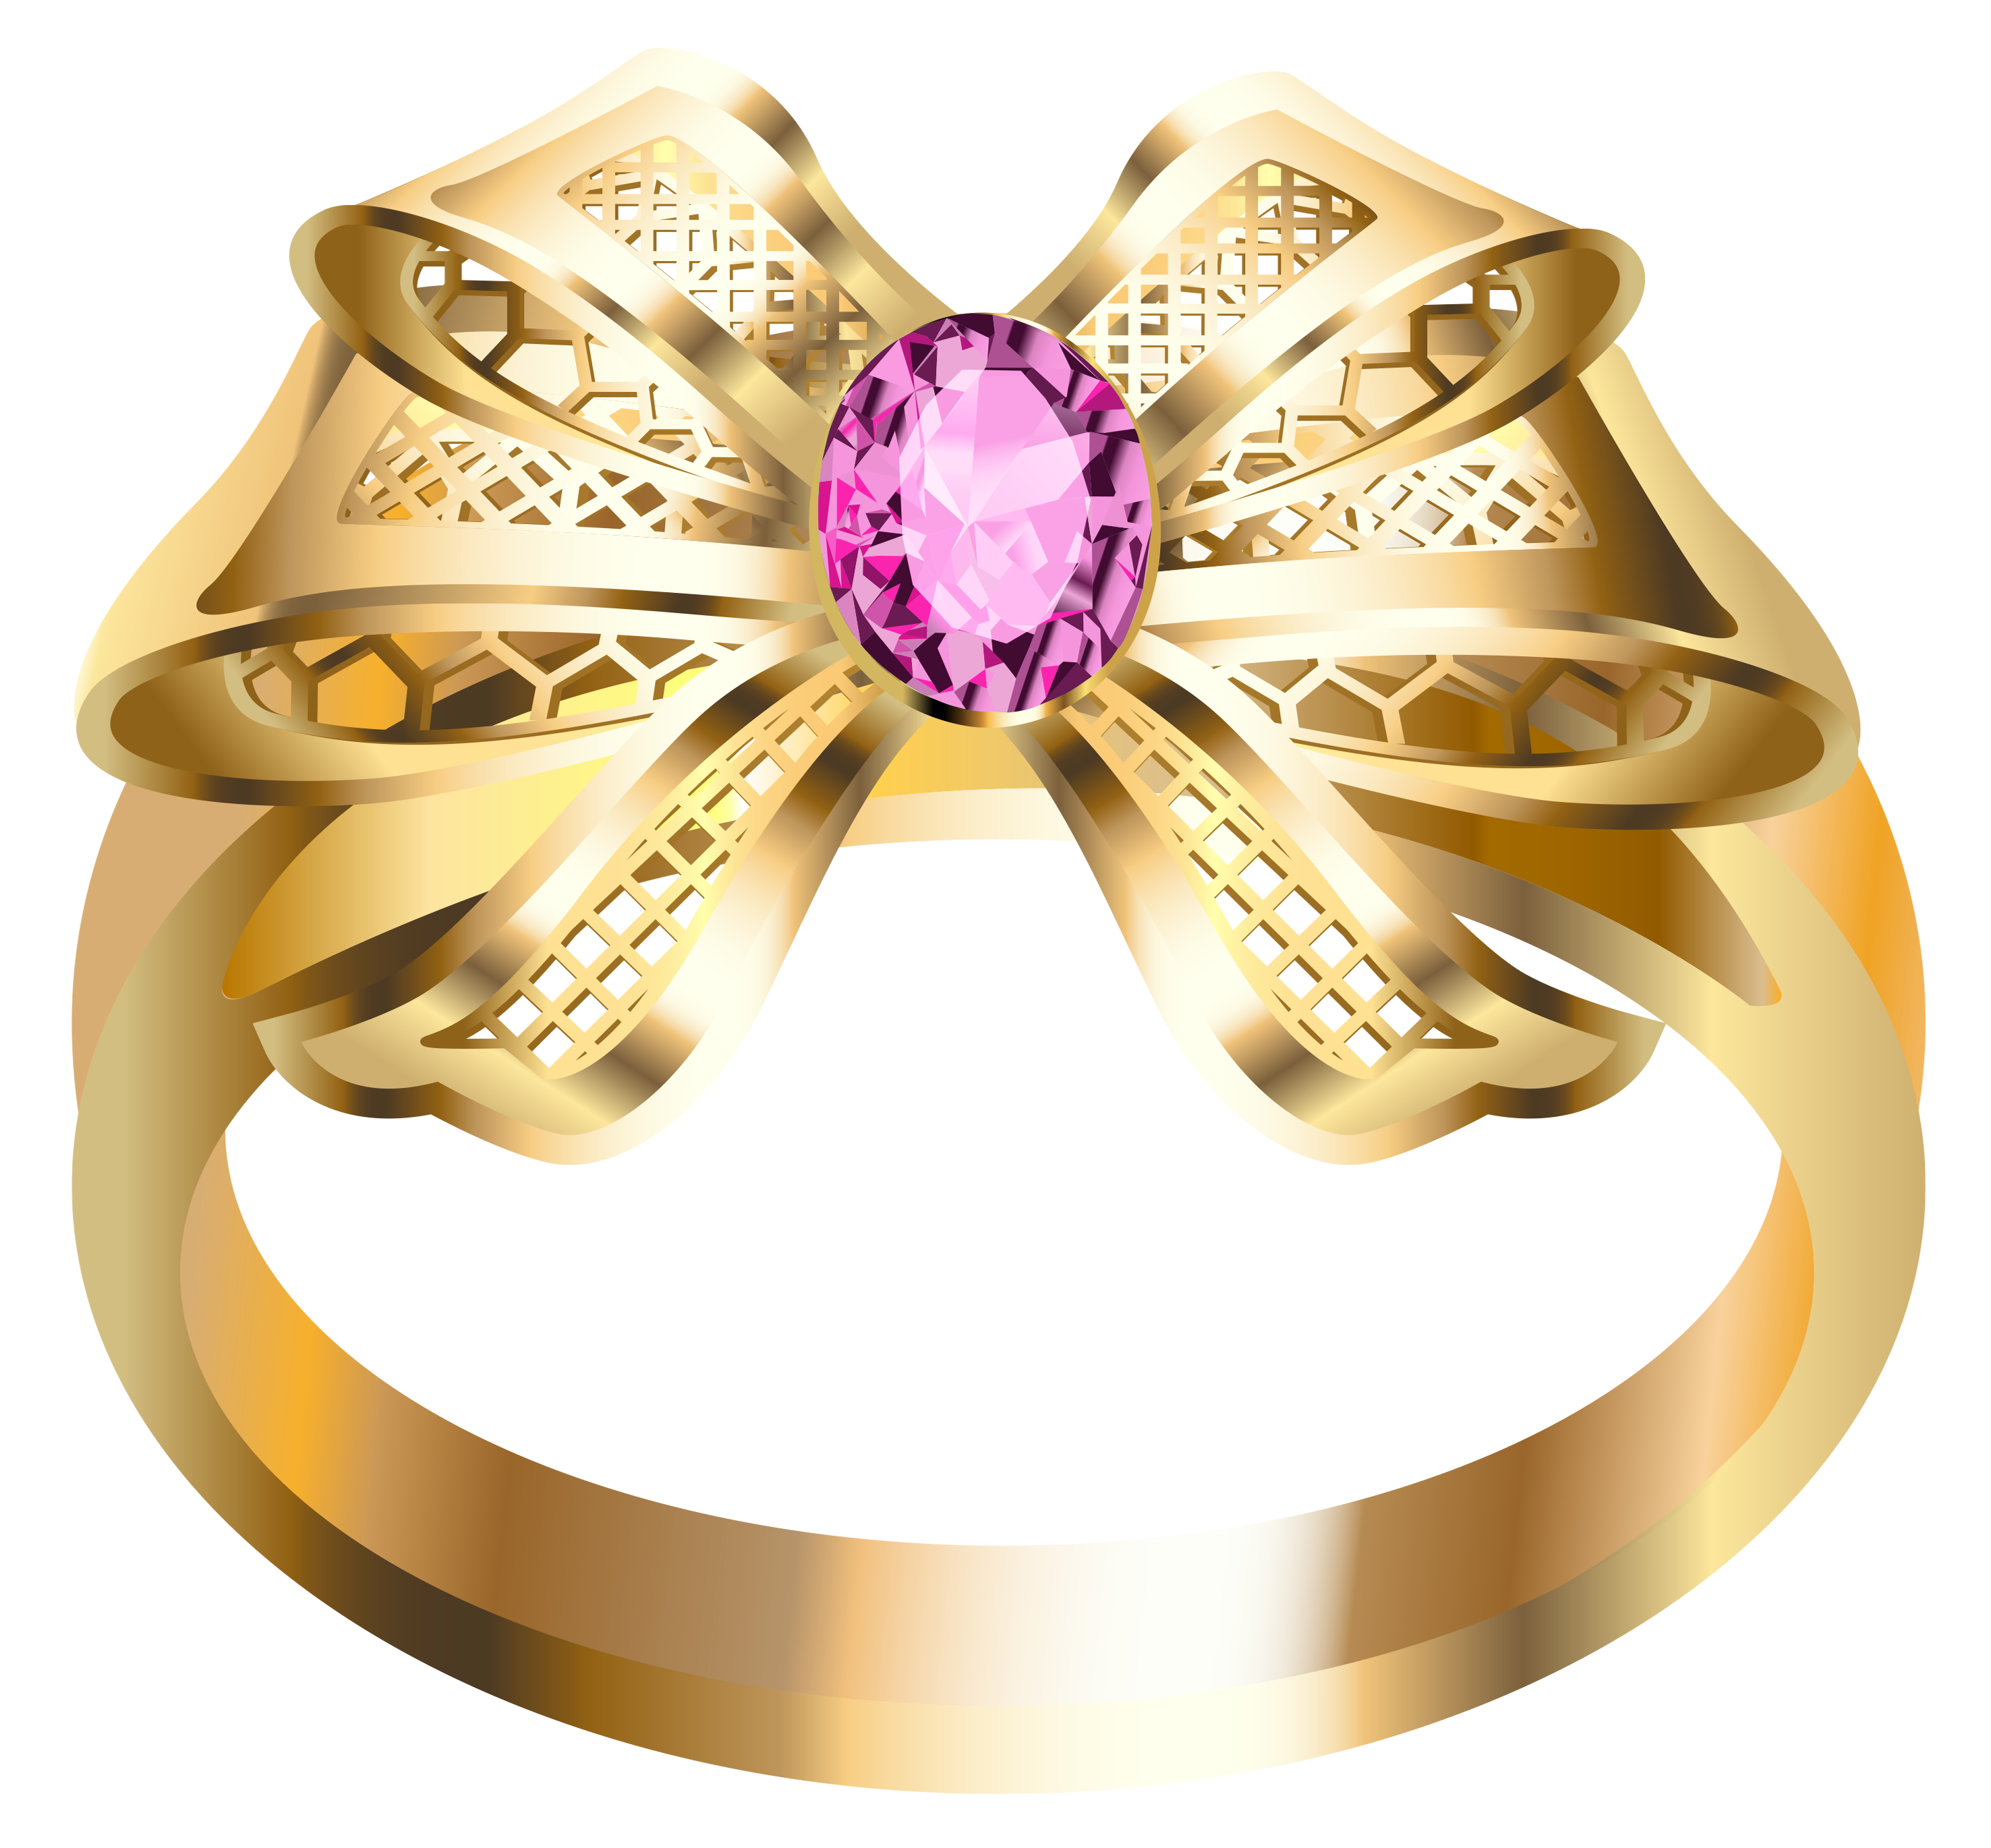 15 Png Jewellers Gold Ring Design For Free Download On Ya Webdesign